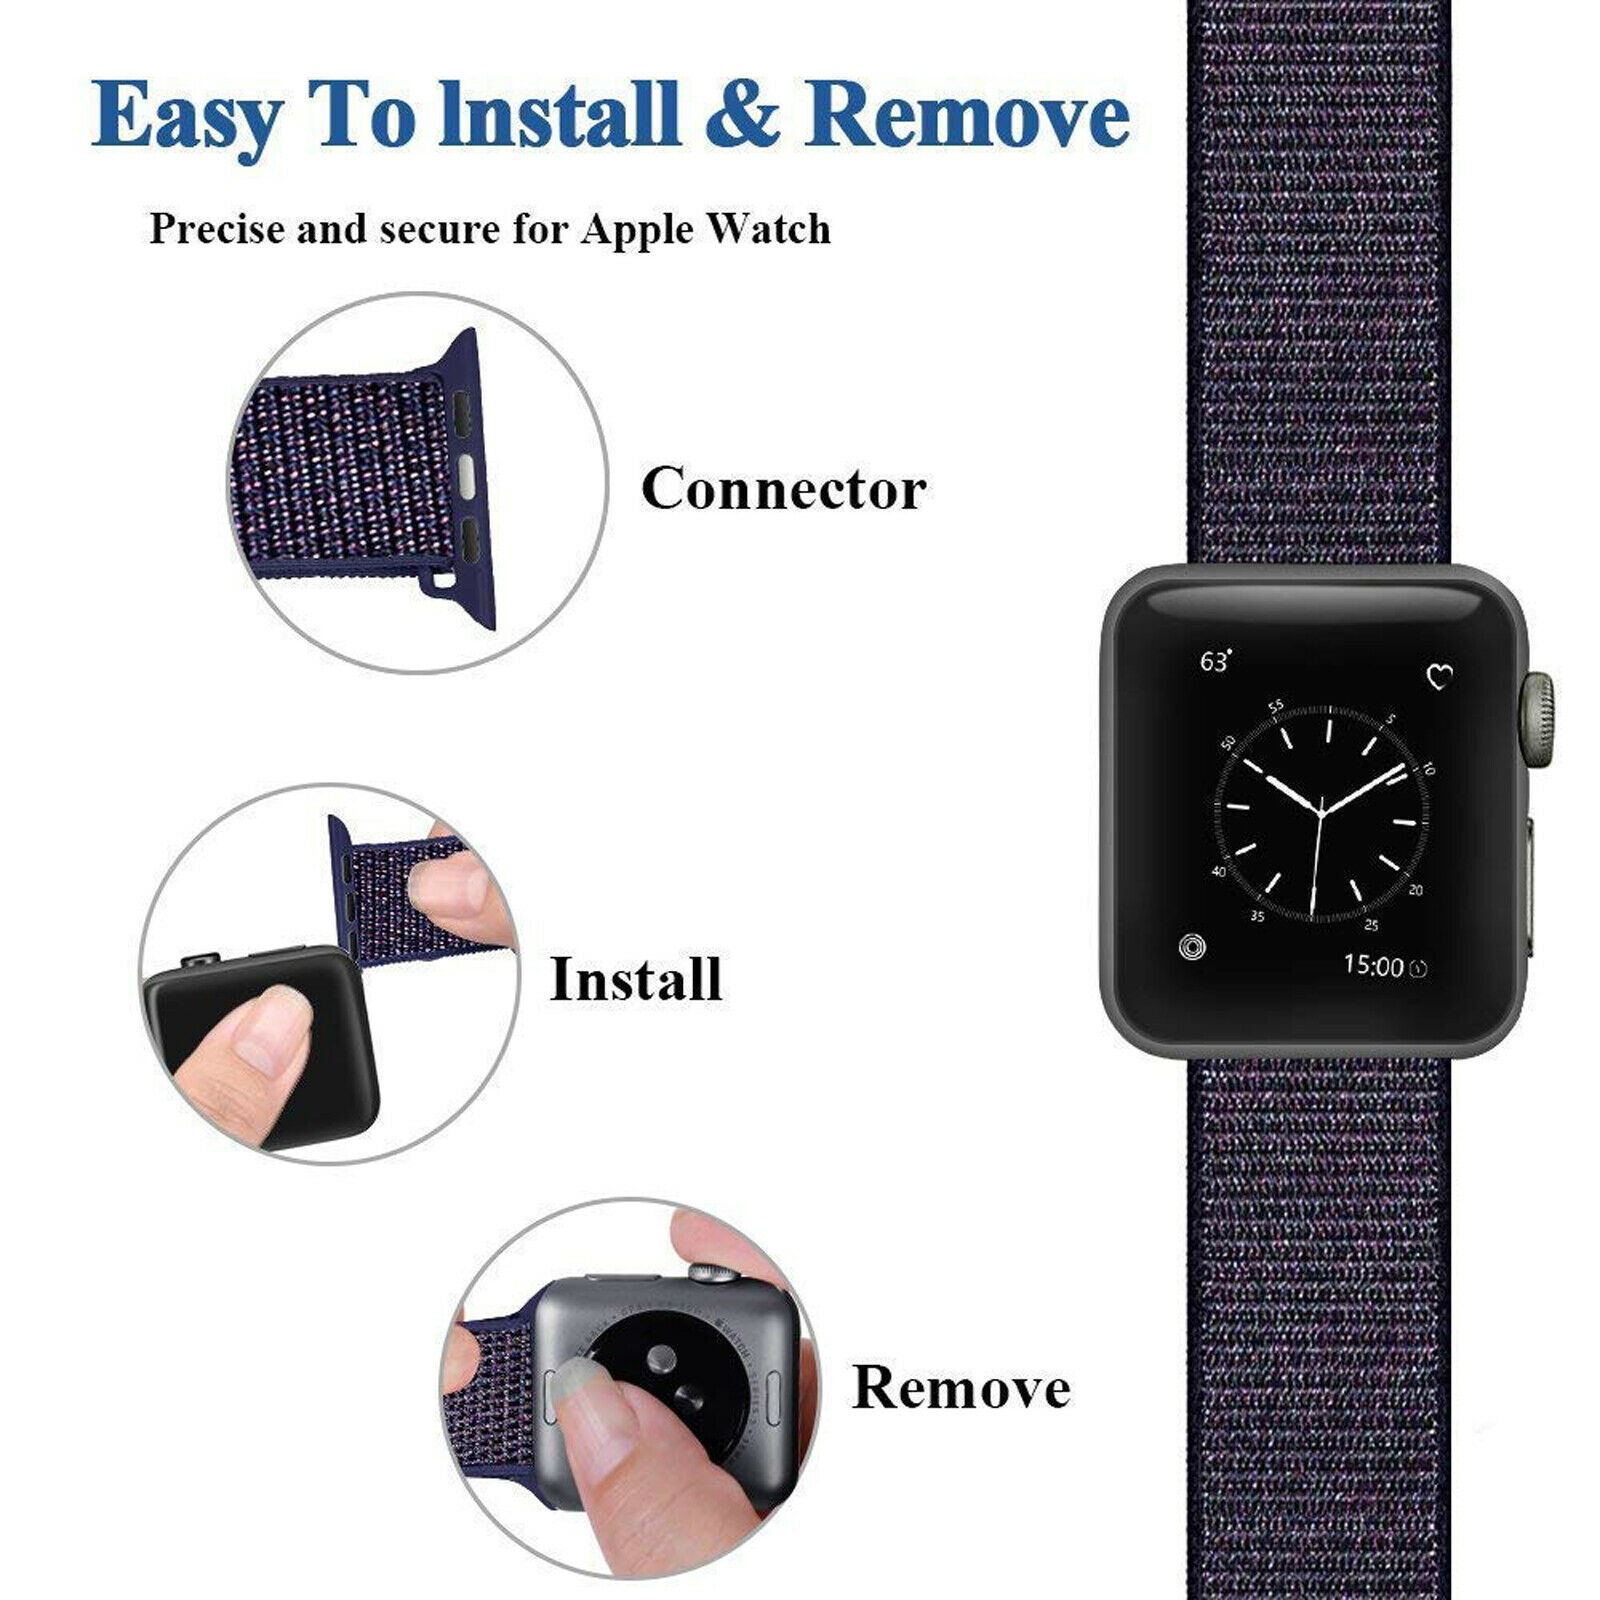 Band-Strap-For-Apple-Watch-Adjustable-Waterproof-Braided-Nylon-Material thumbnail 28